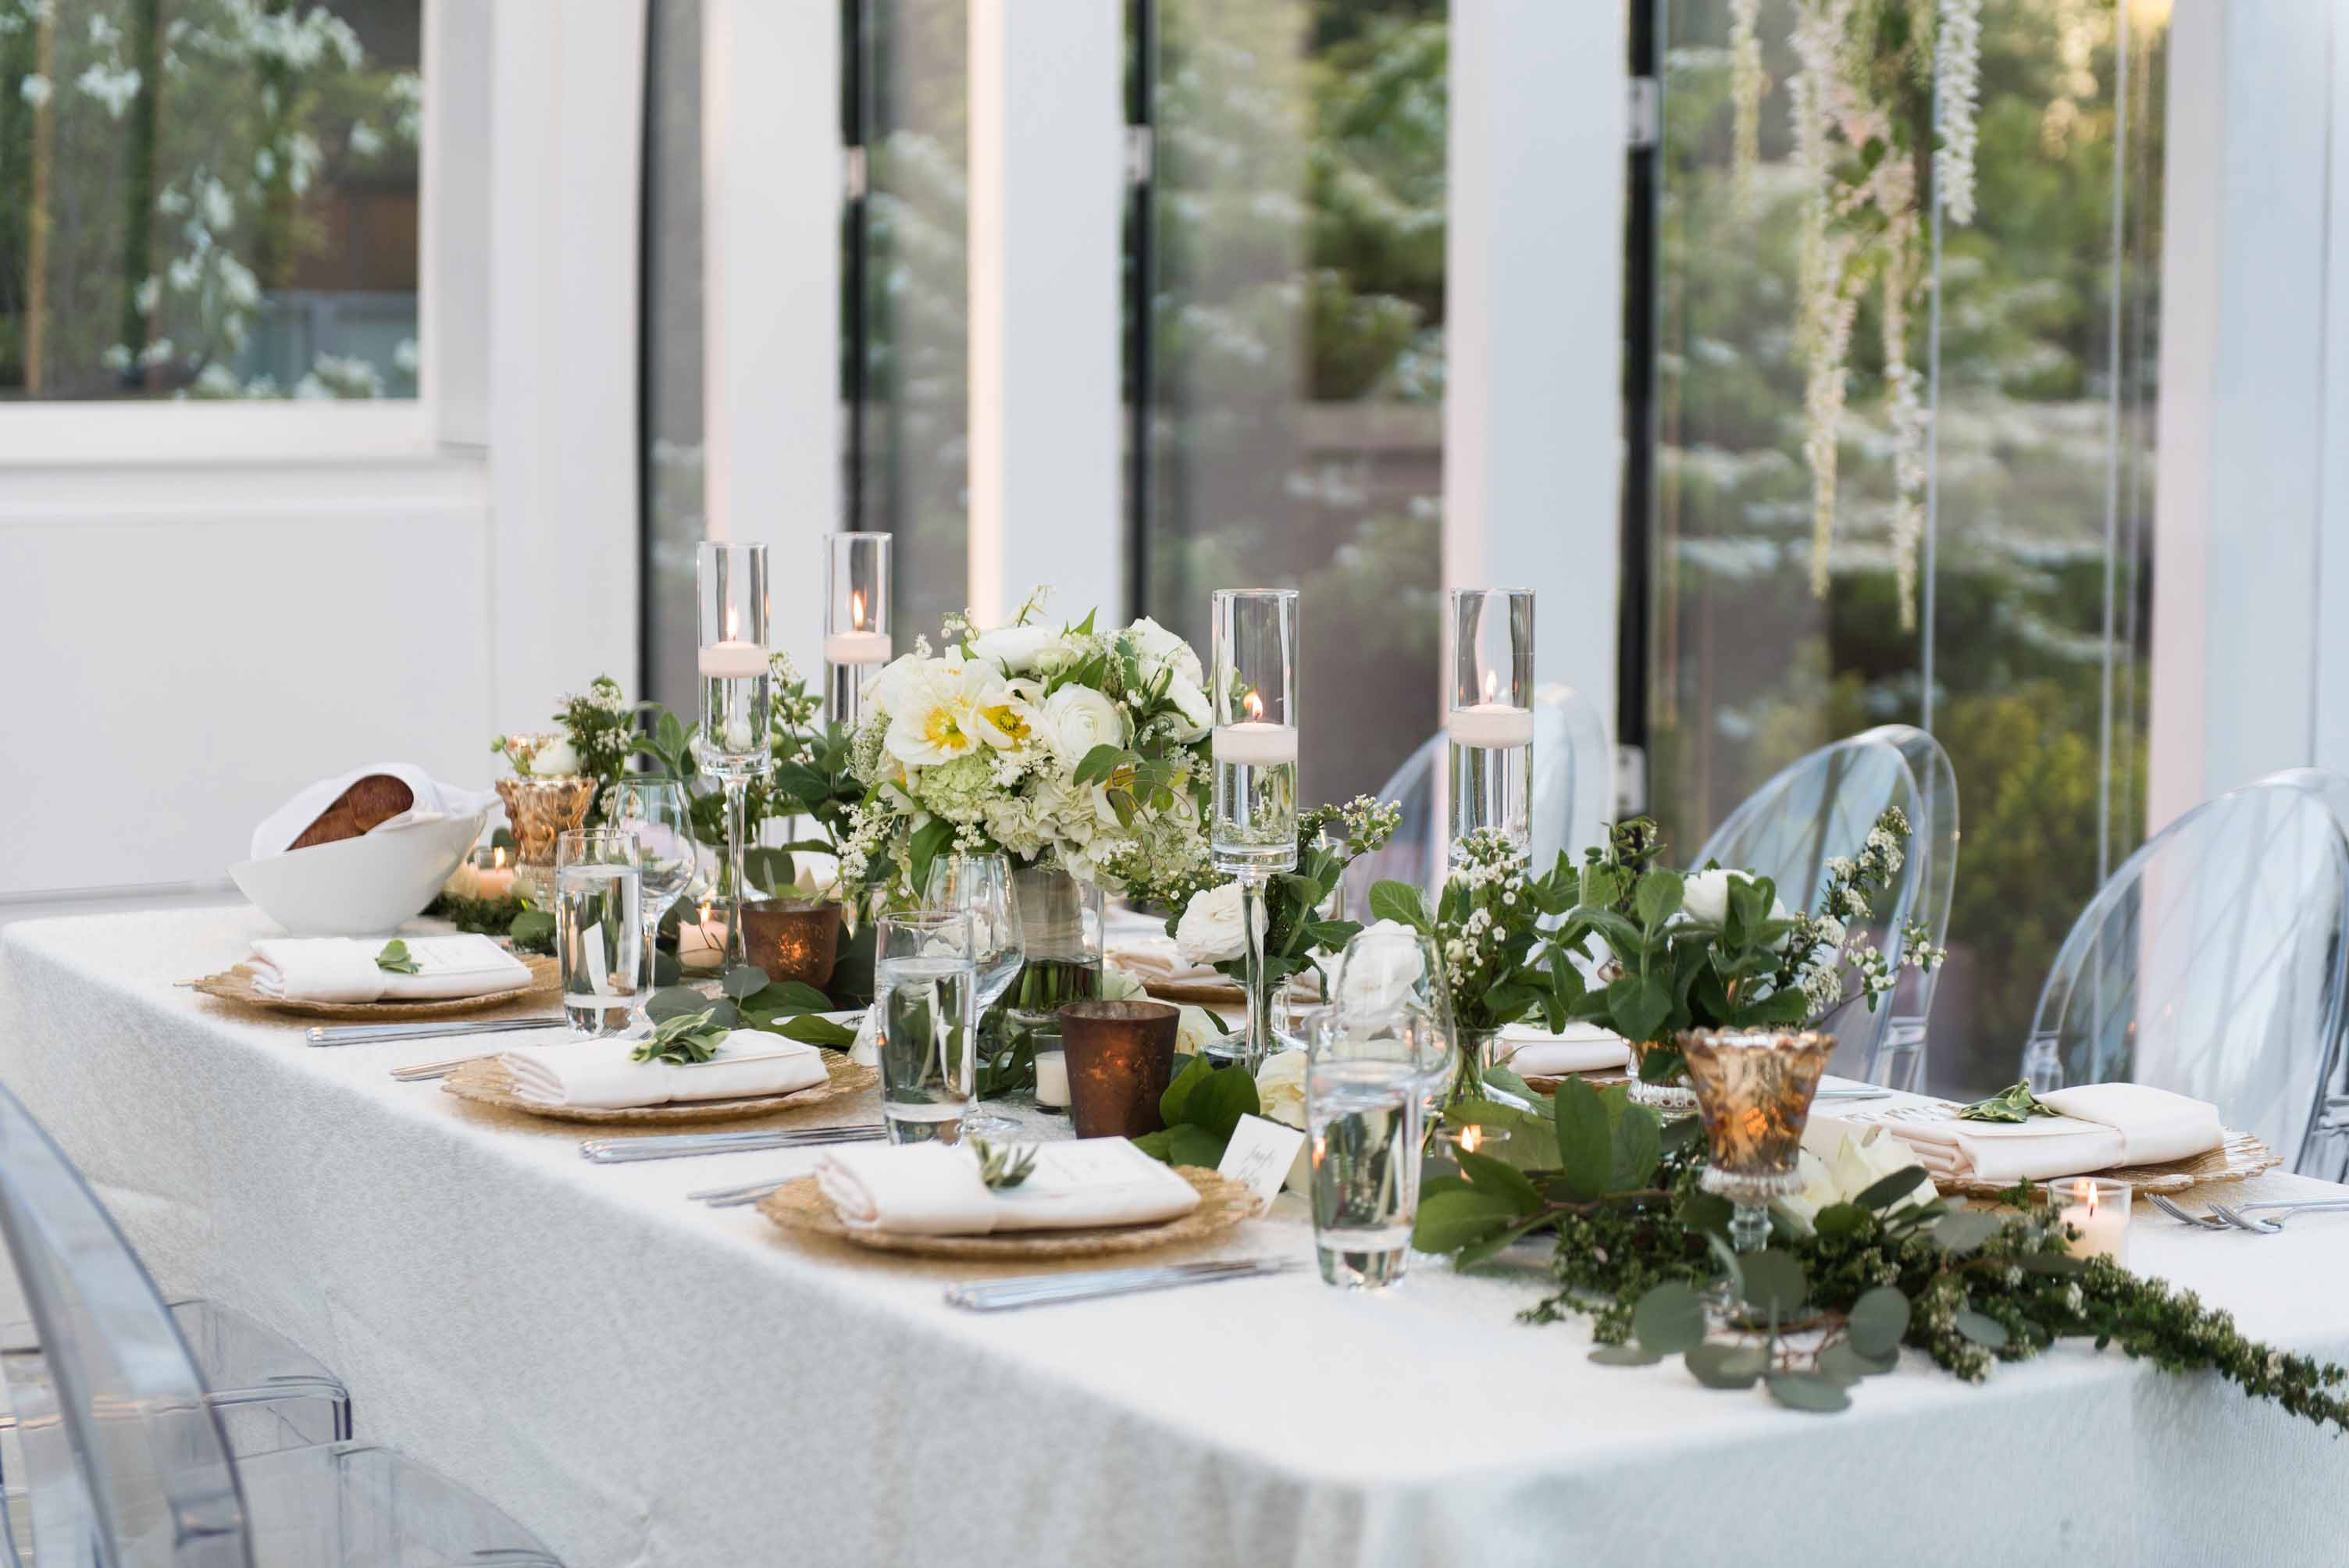 Wedding reception head table lined with greenery garland, spring flowers, gold charger plates, glass hurricane candles, and gold votives